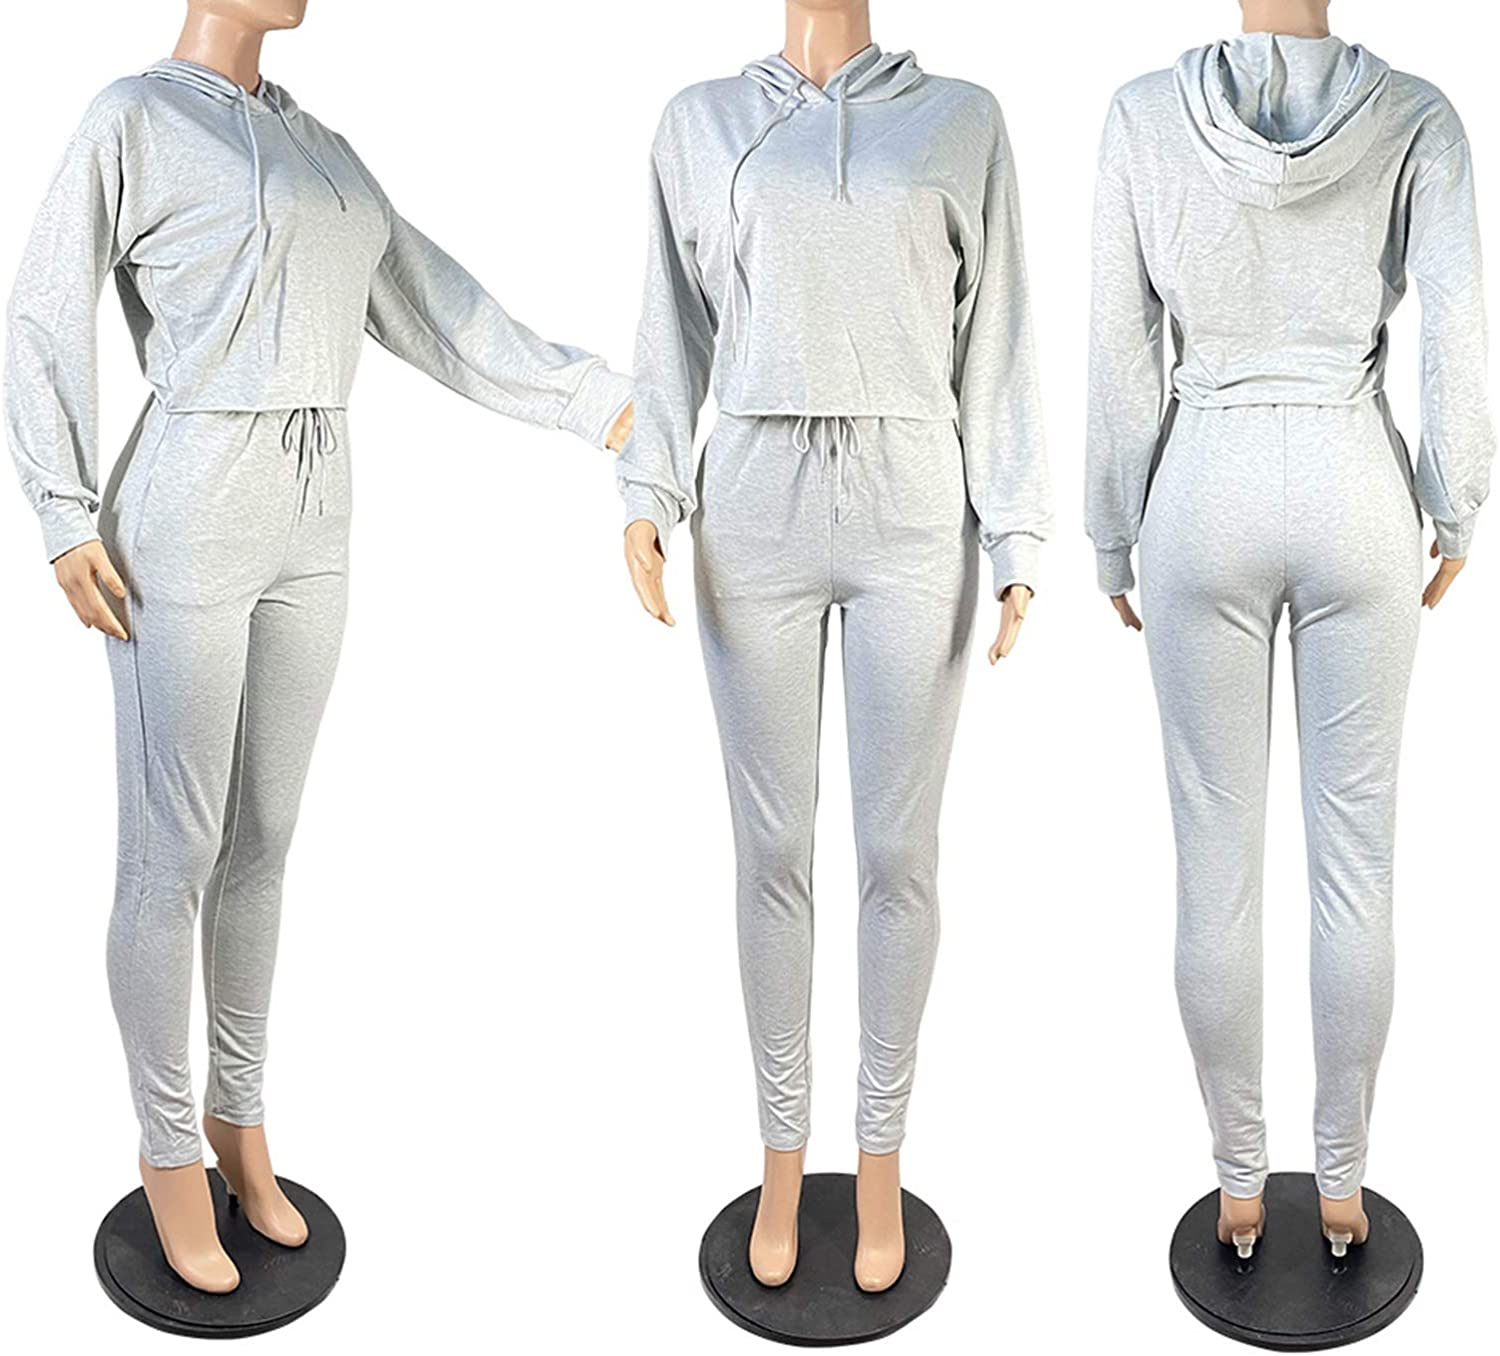 2 Piece Sweatsuit for Women Long Sleeve Crop Pullover Hoodie Tops Drawstring Pocket Sweatpant Outfit